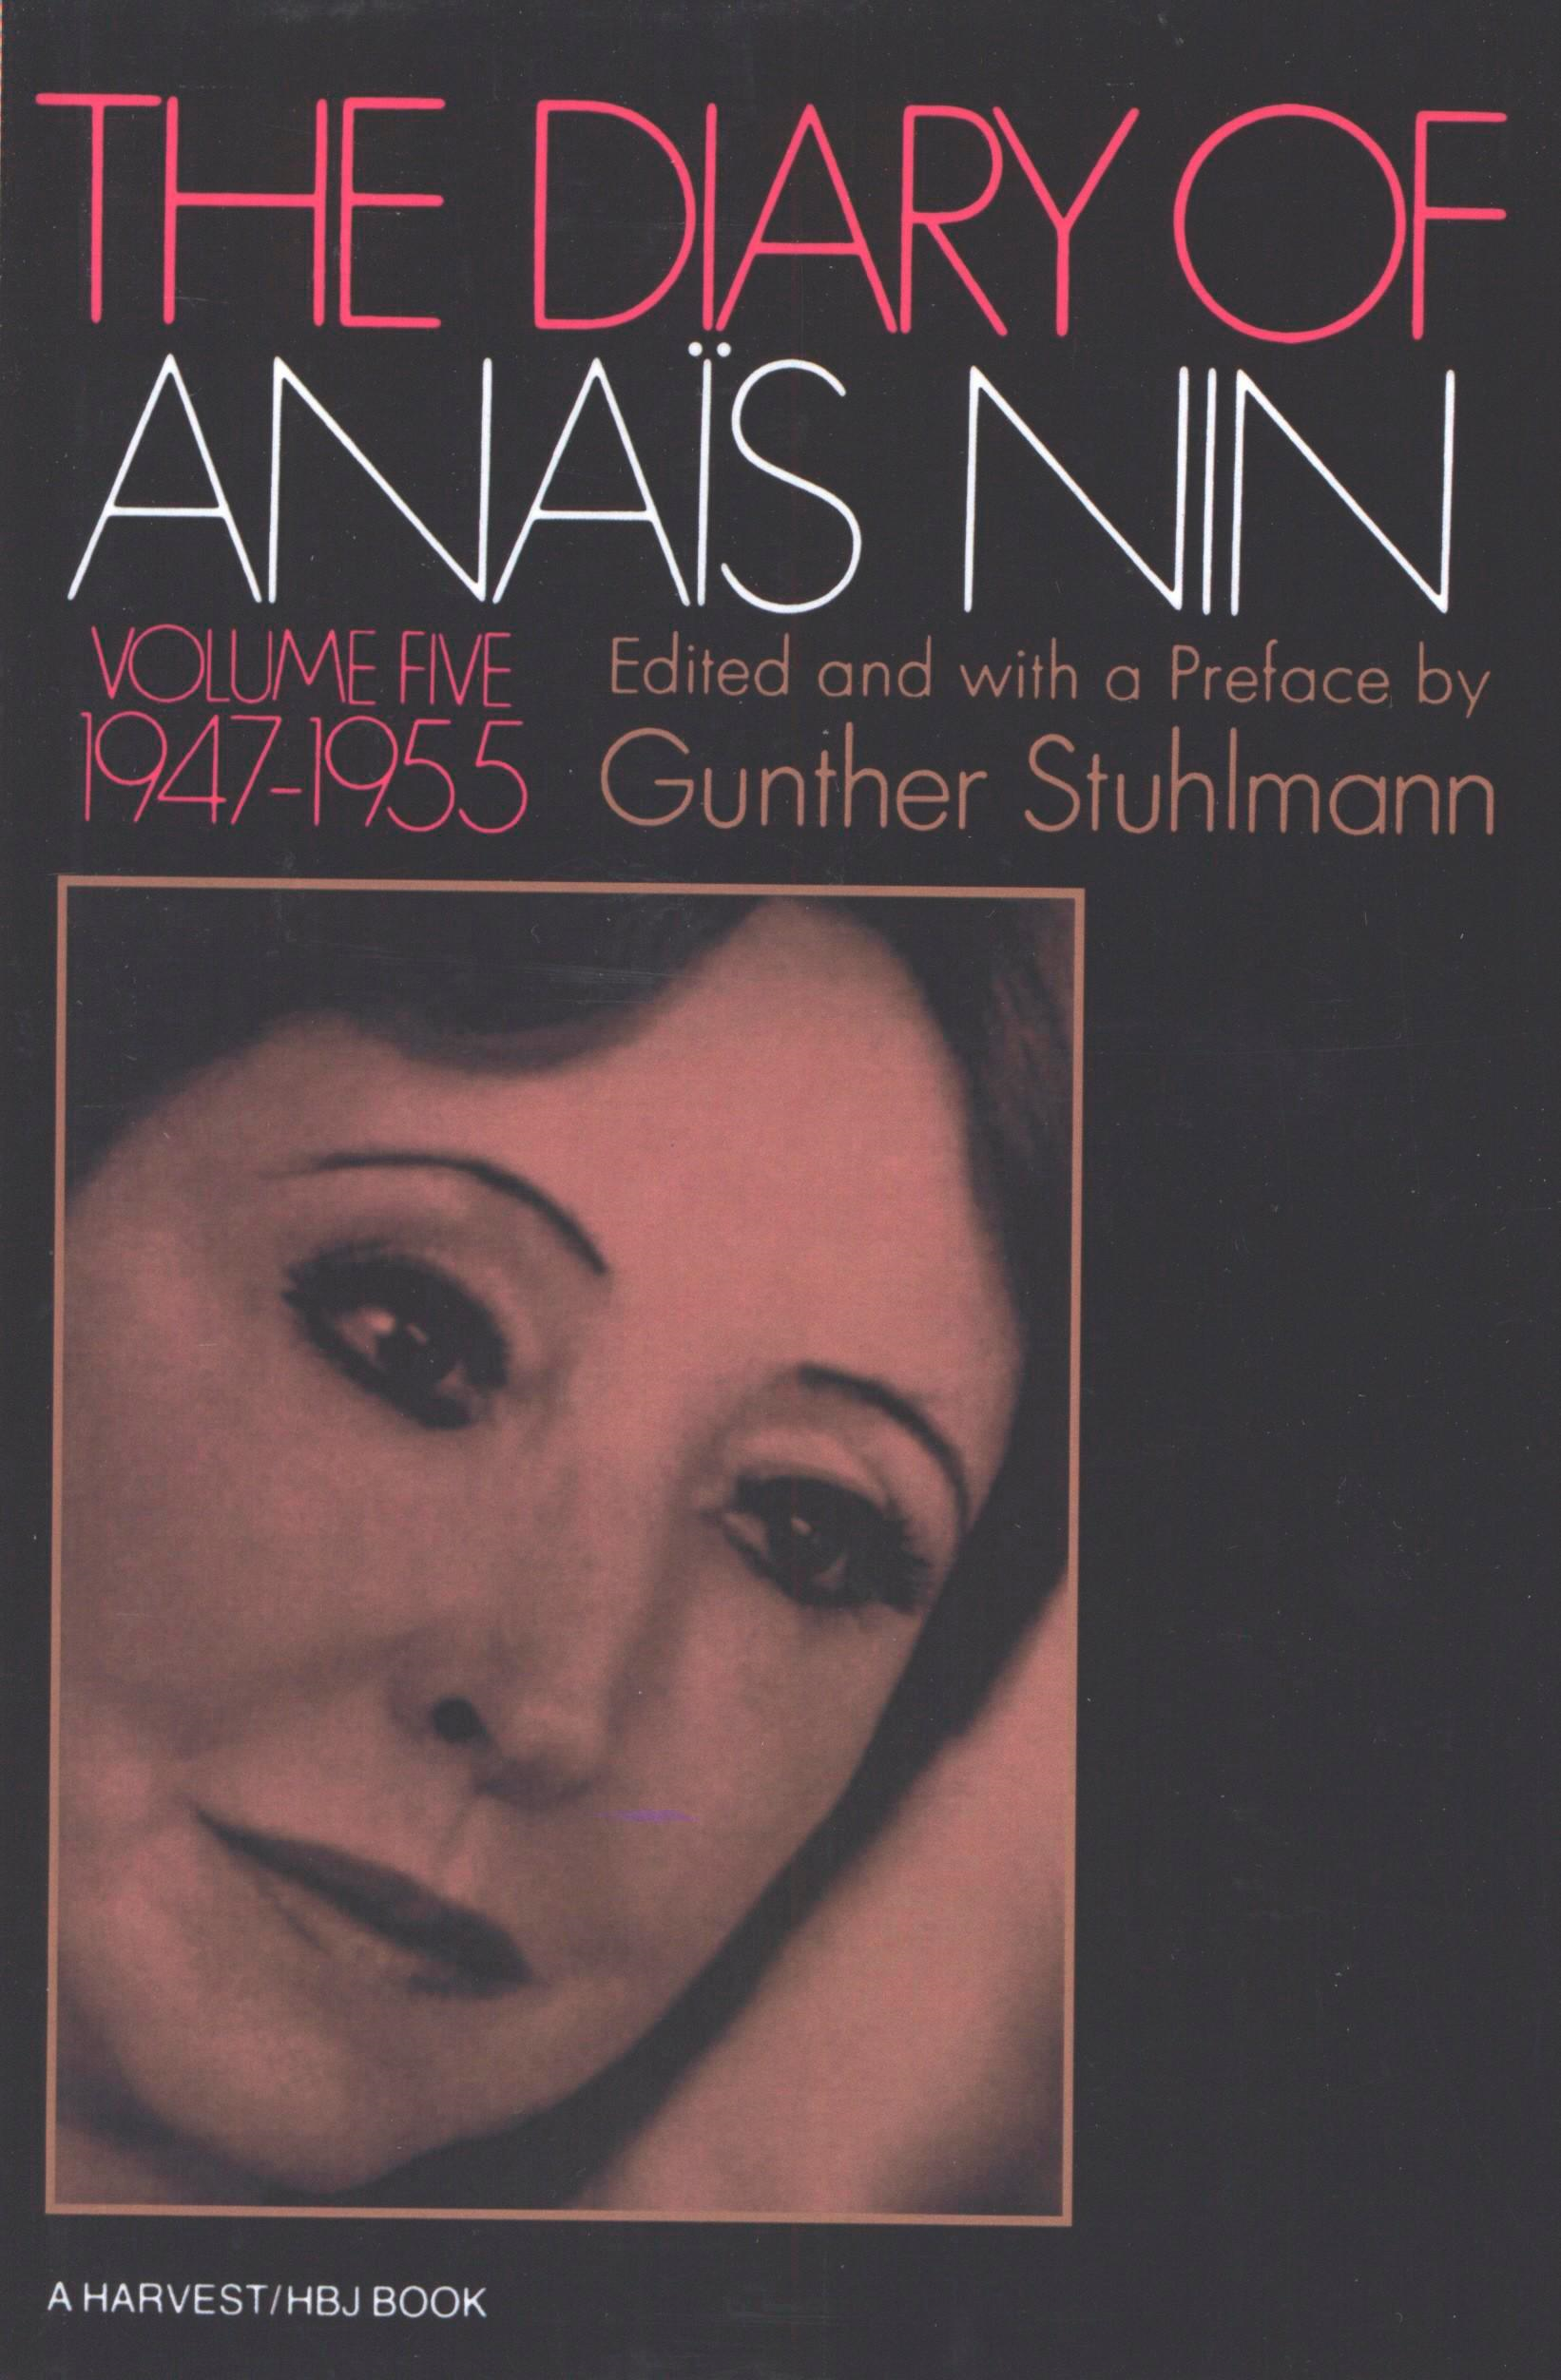 Diary Of Anais Nin Volume 5 1947-1955